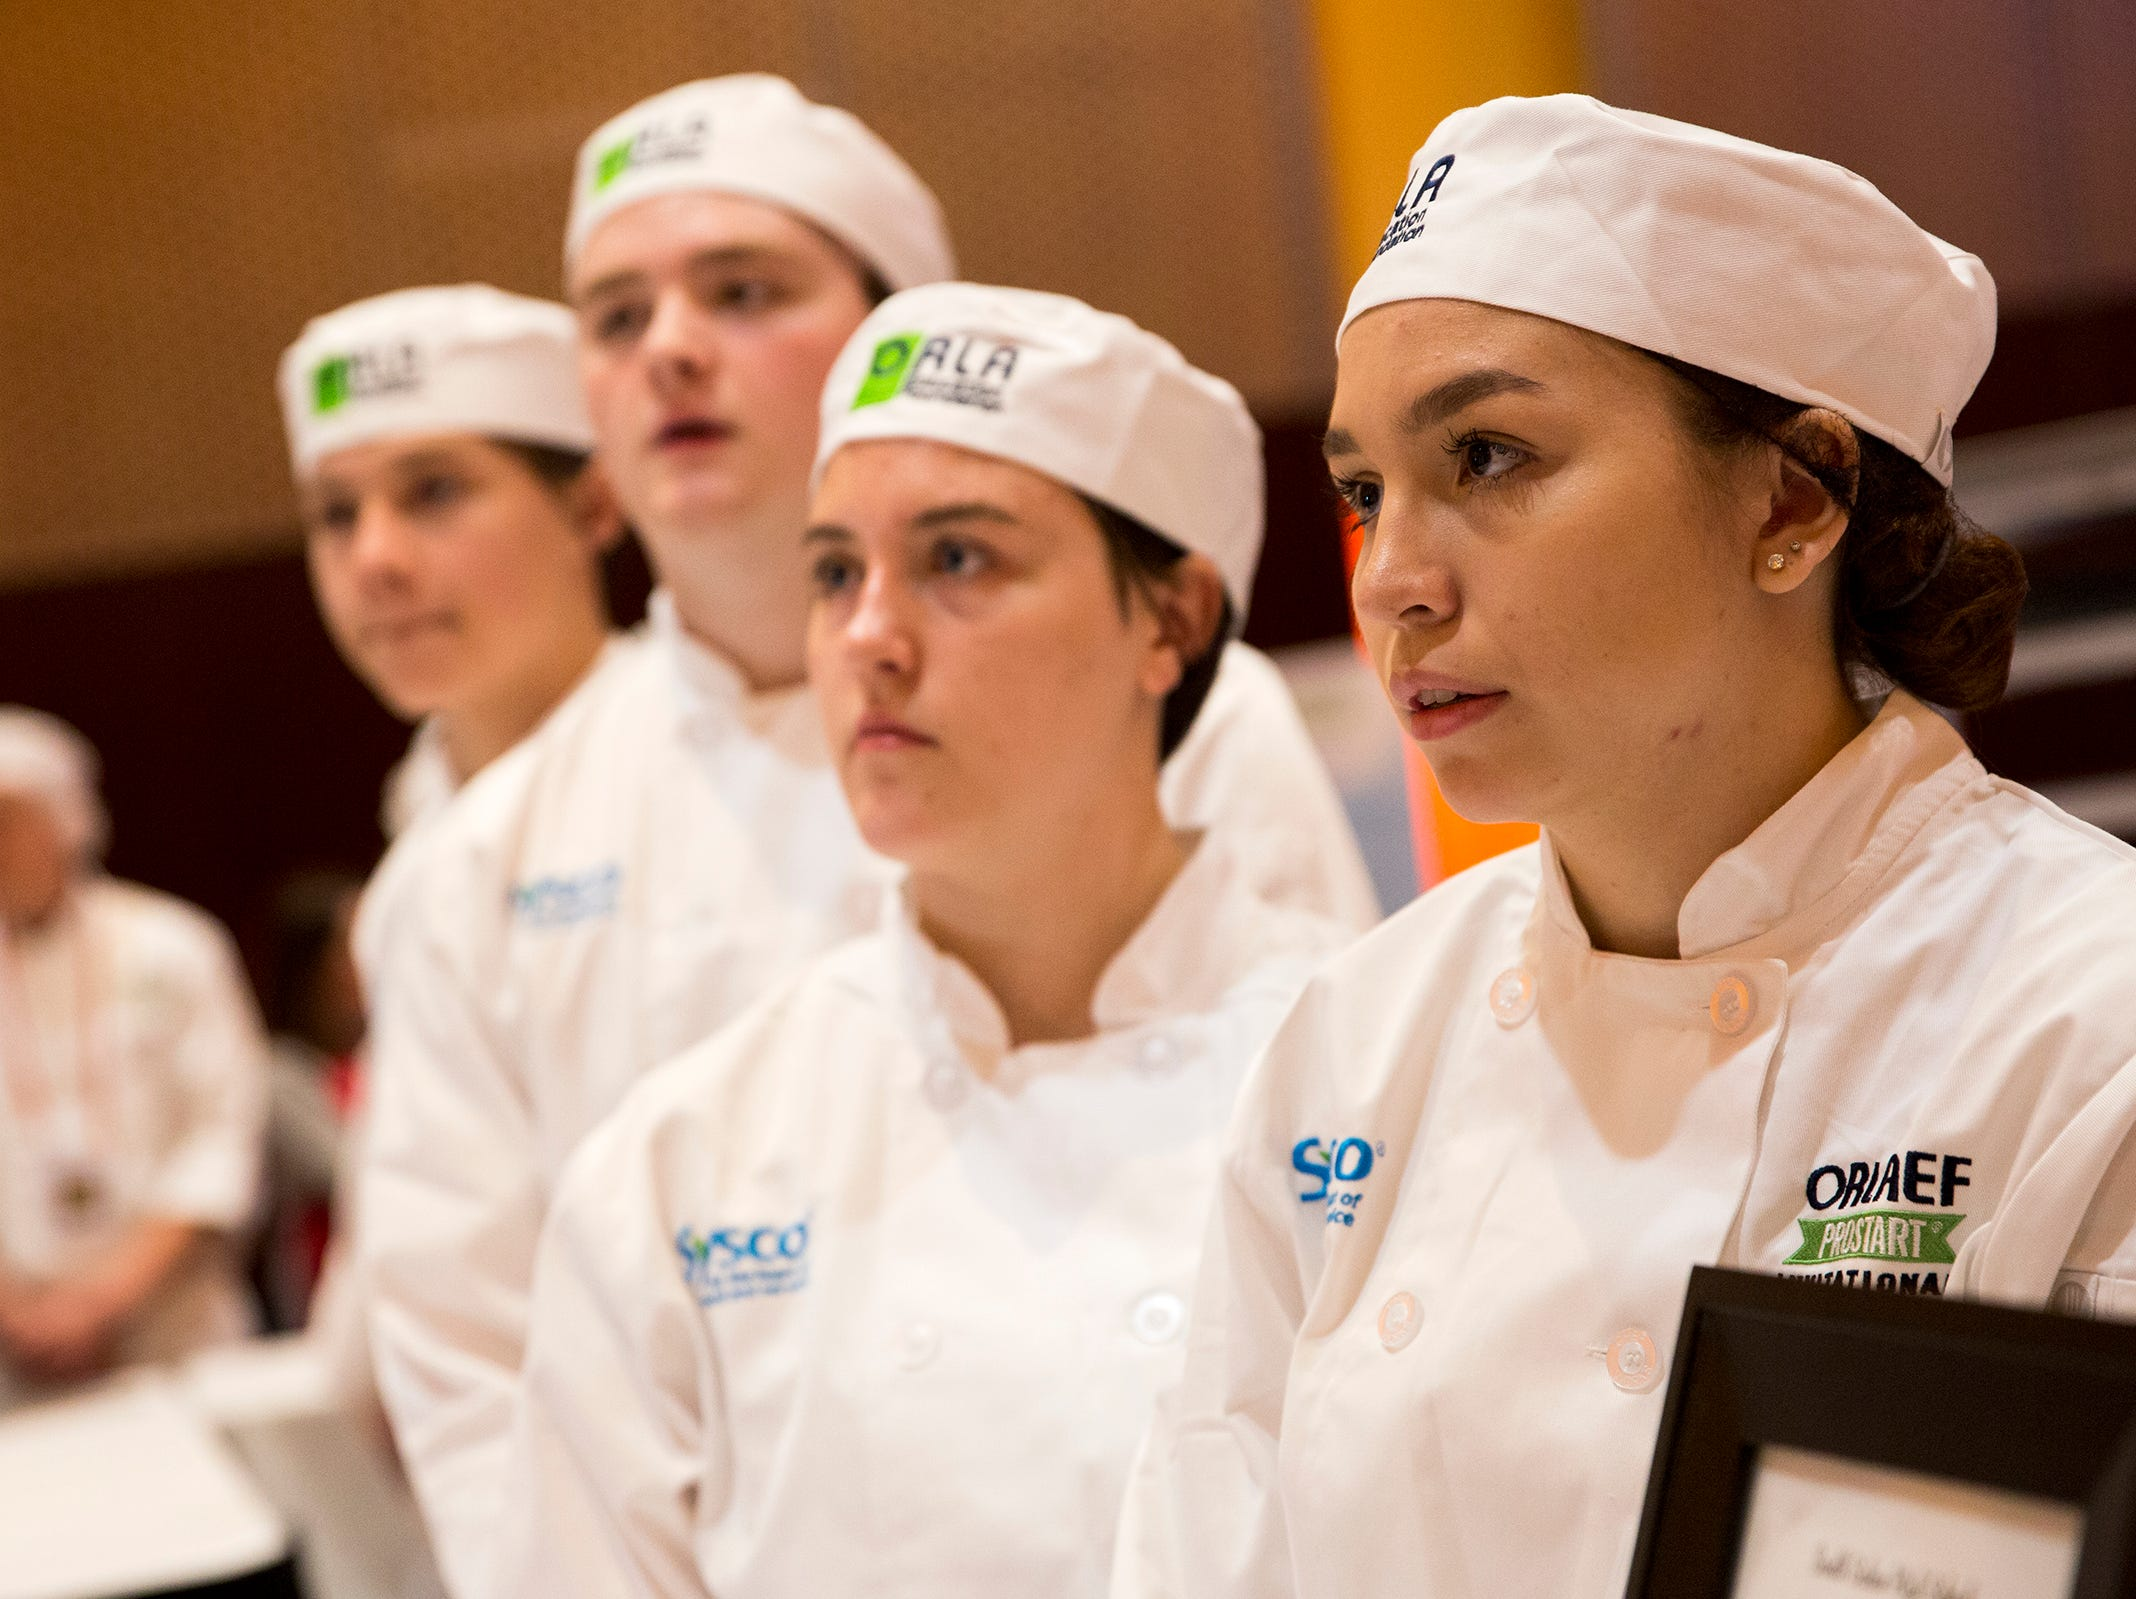 South Salem High School culinary students present their menu to the judges during the ORLAEF's ProStart Invitational, a statewide high school culinary competition, at the Salem Convention Center on March 18, 2019.